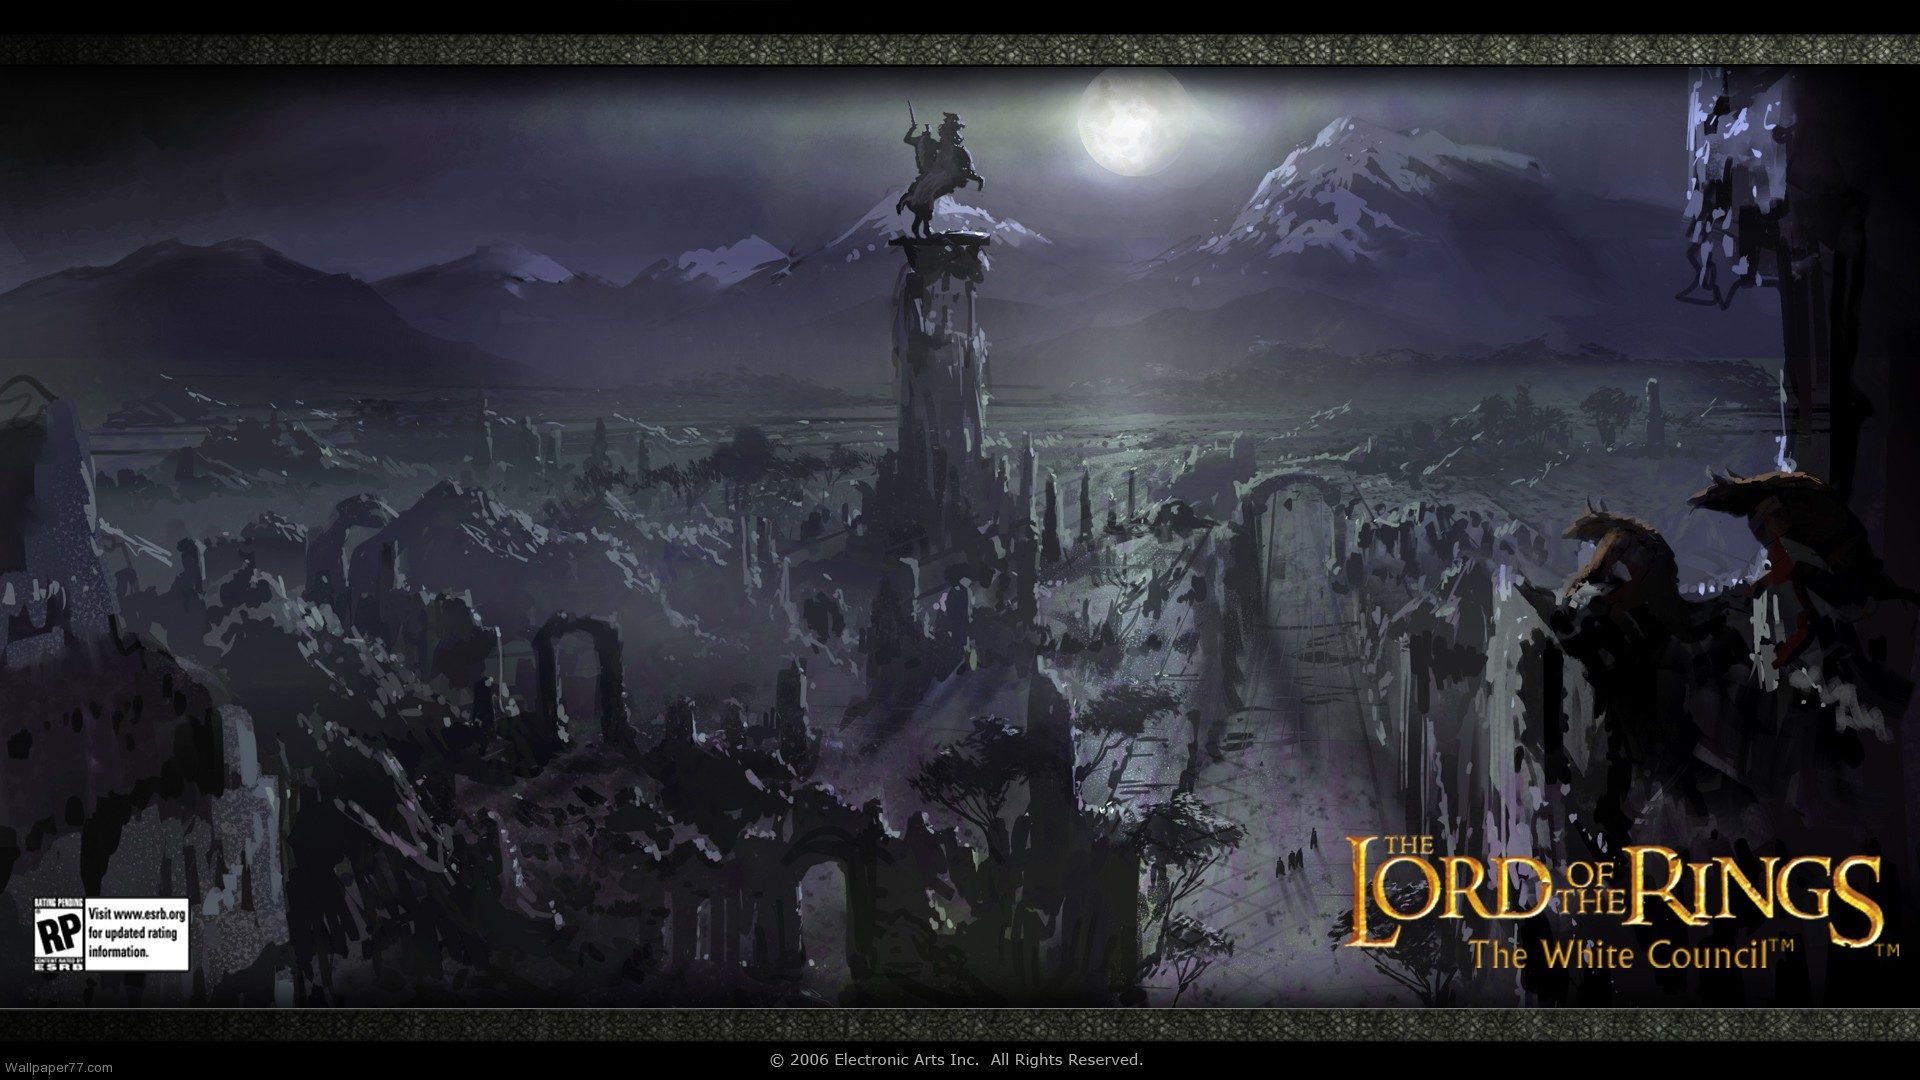 LOTR Wallpaper 1920x1080 - WallpaperSafari